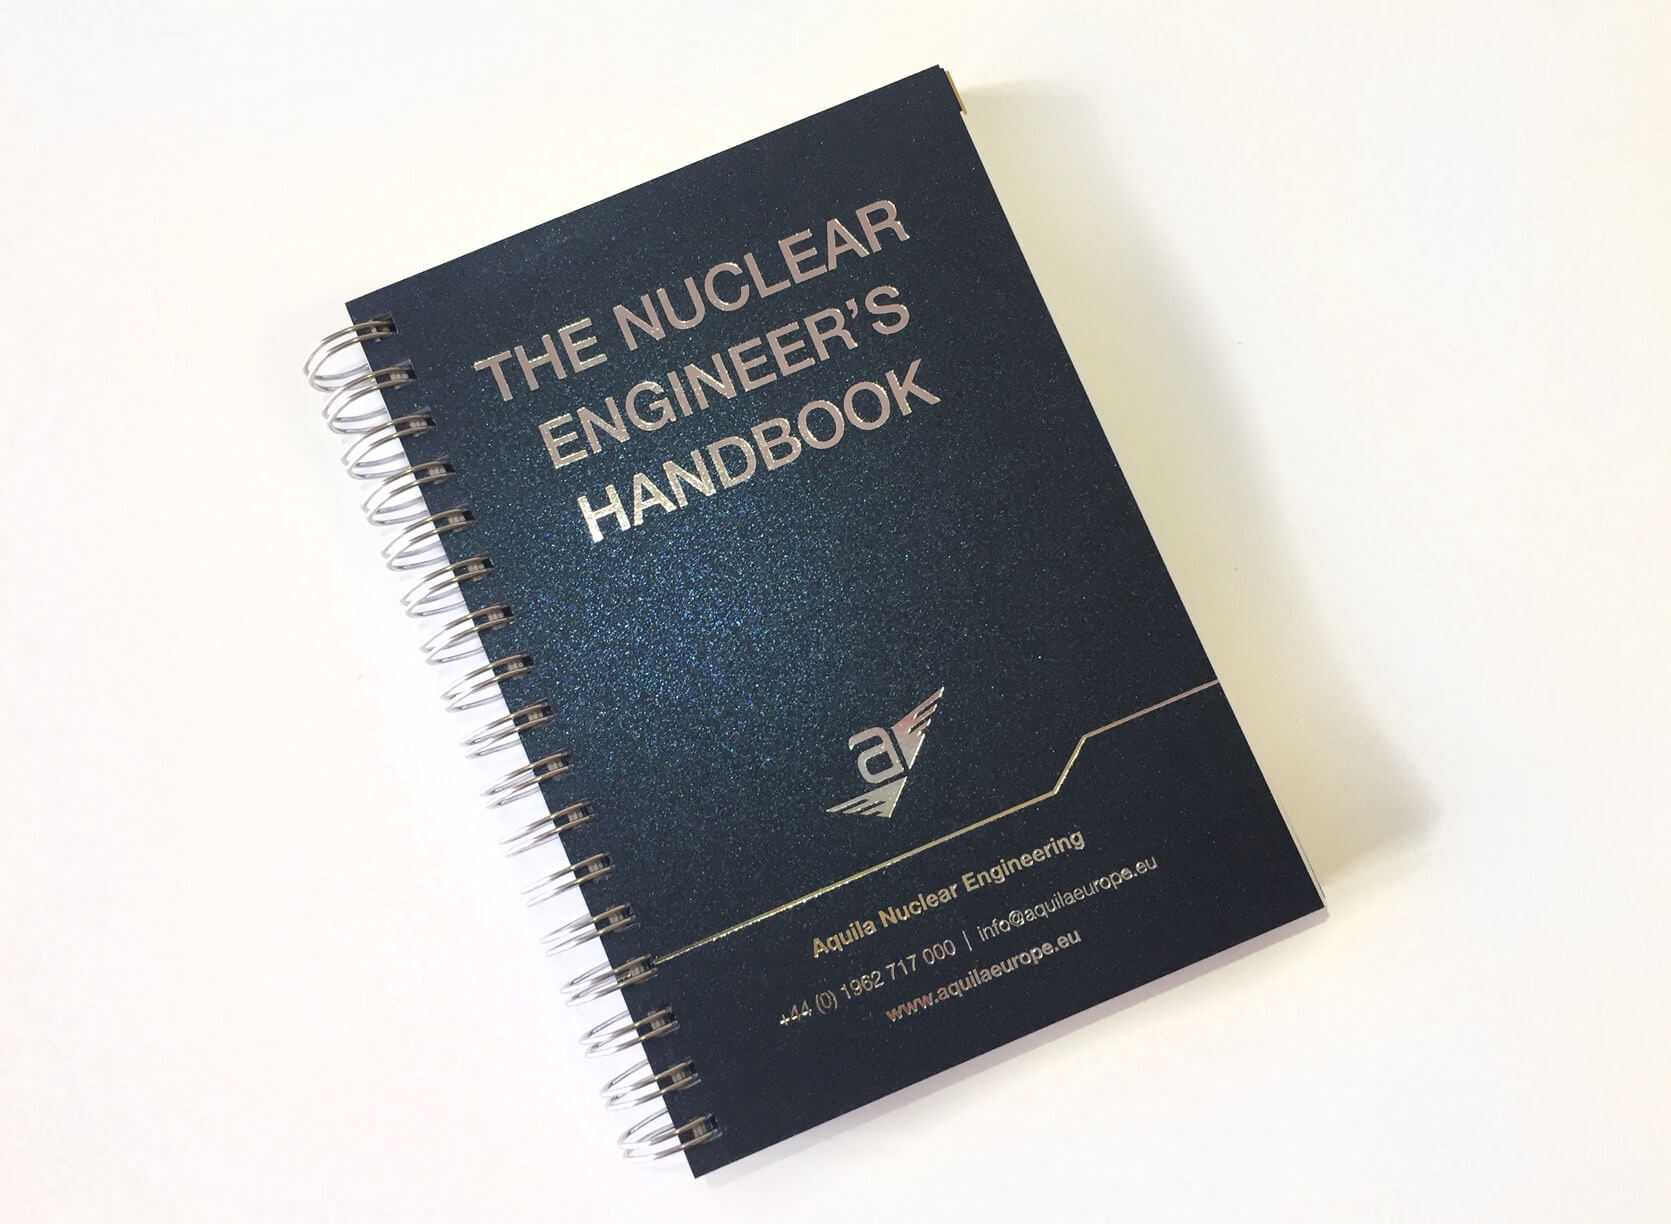 Aquila Nuclear Engineering Handbook